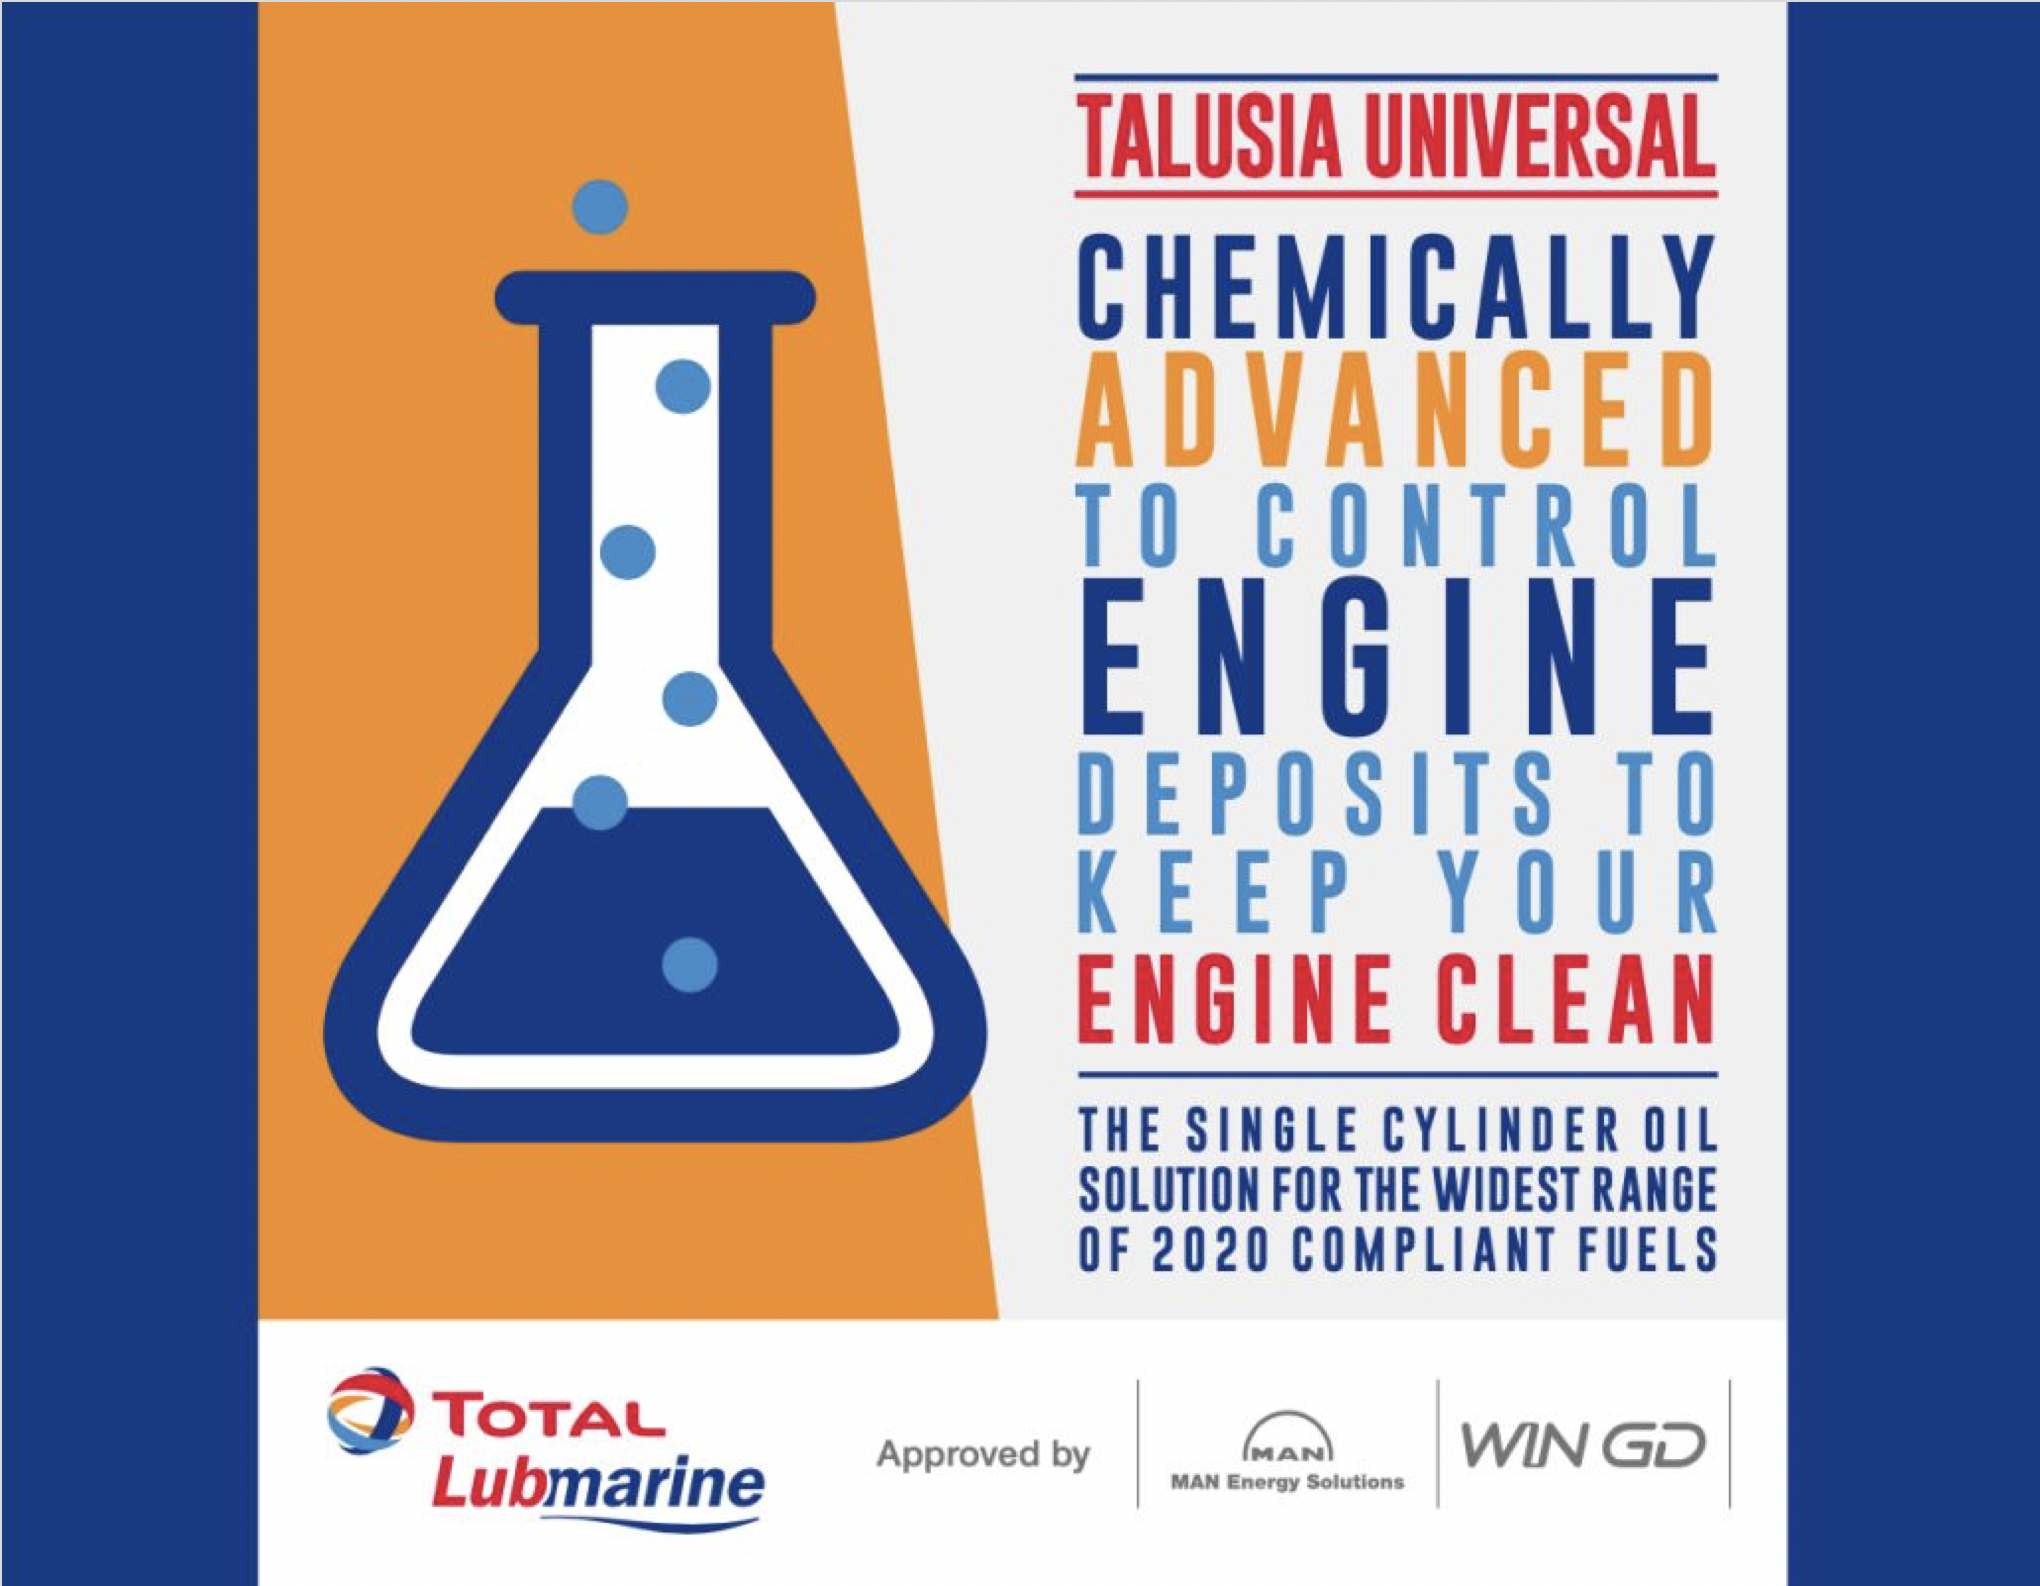 Total Lubmarine receives No Objection Letter from WinGD for 'Talusia Universal'